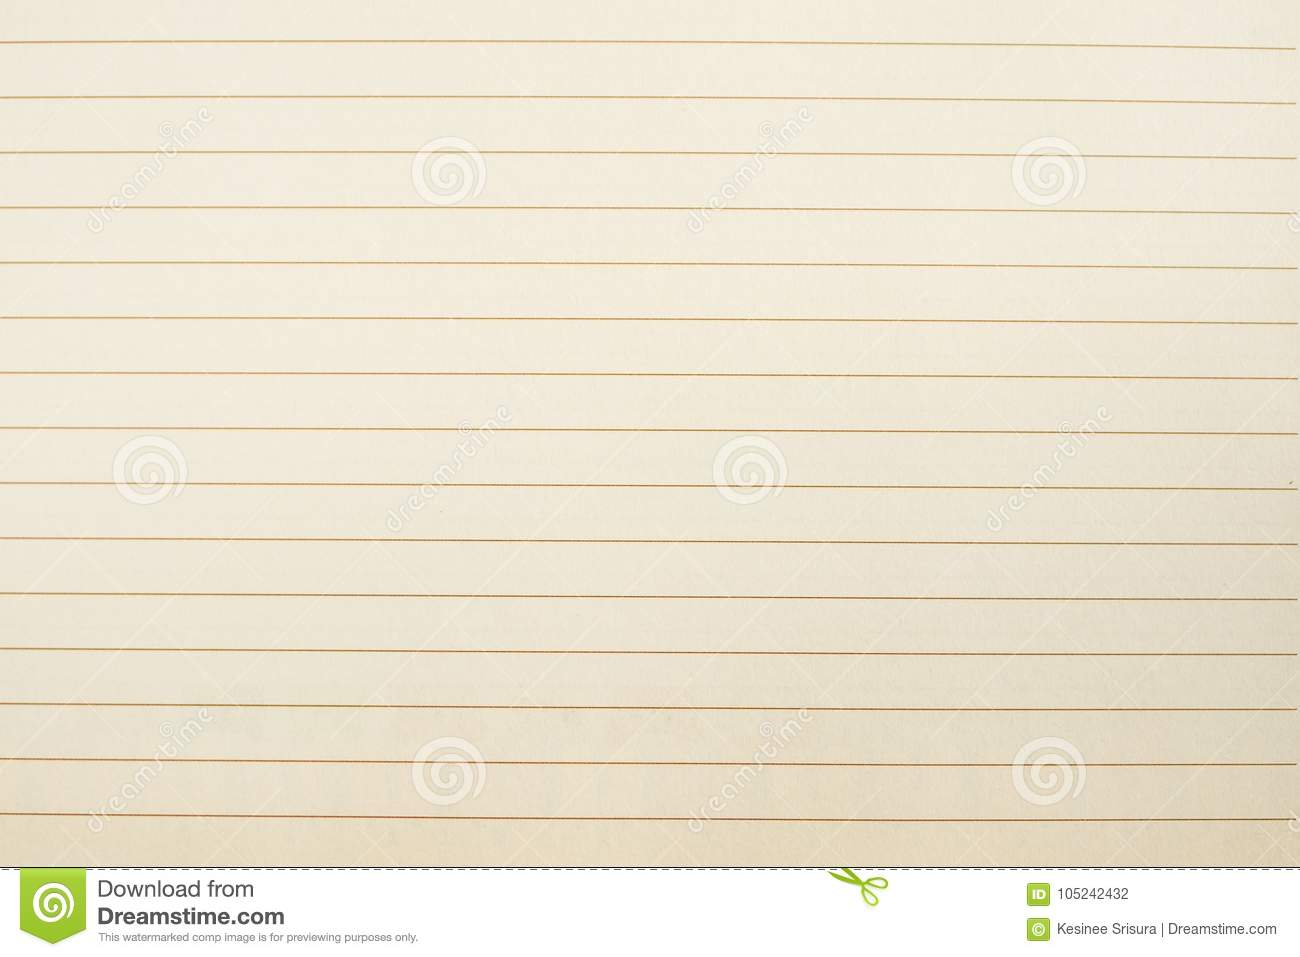 blank paper with lines as a guide for handwriting stock photo